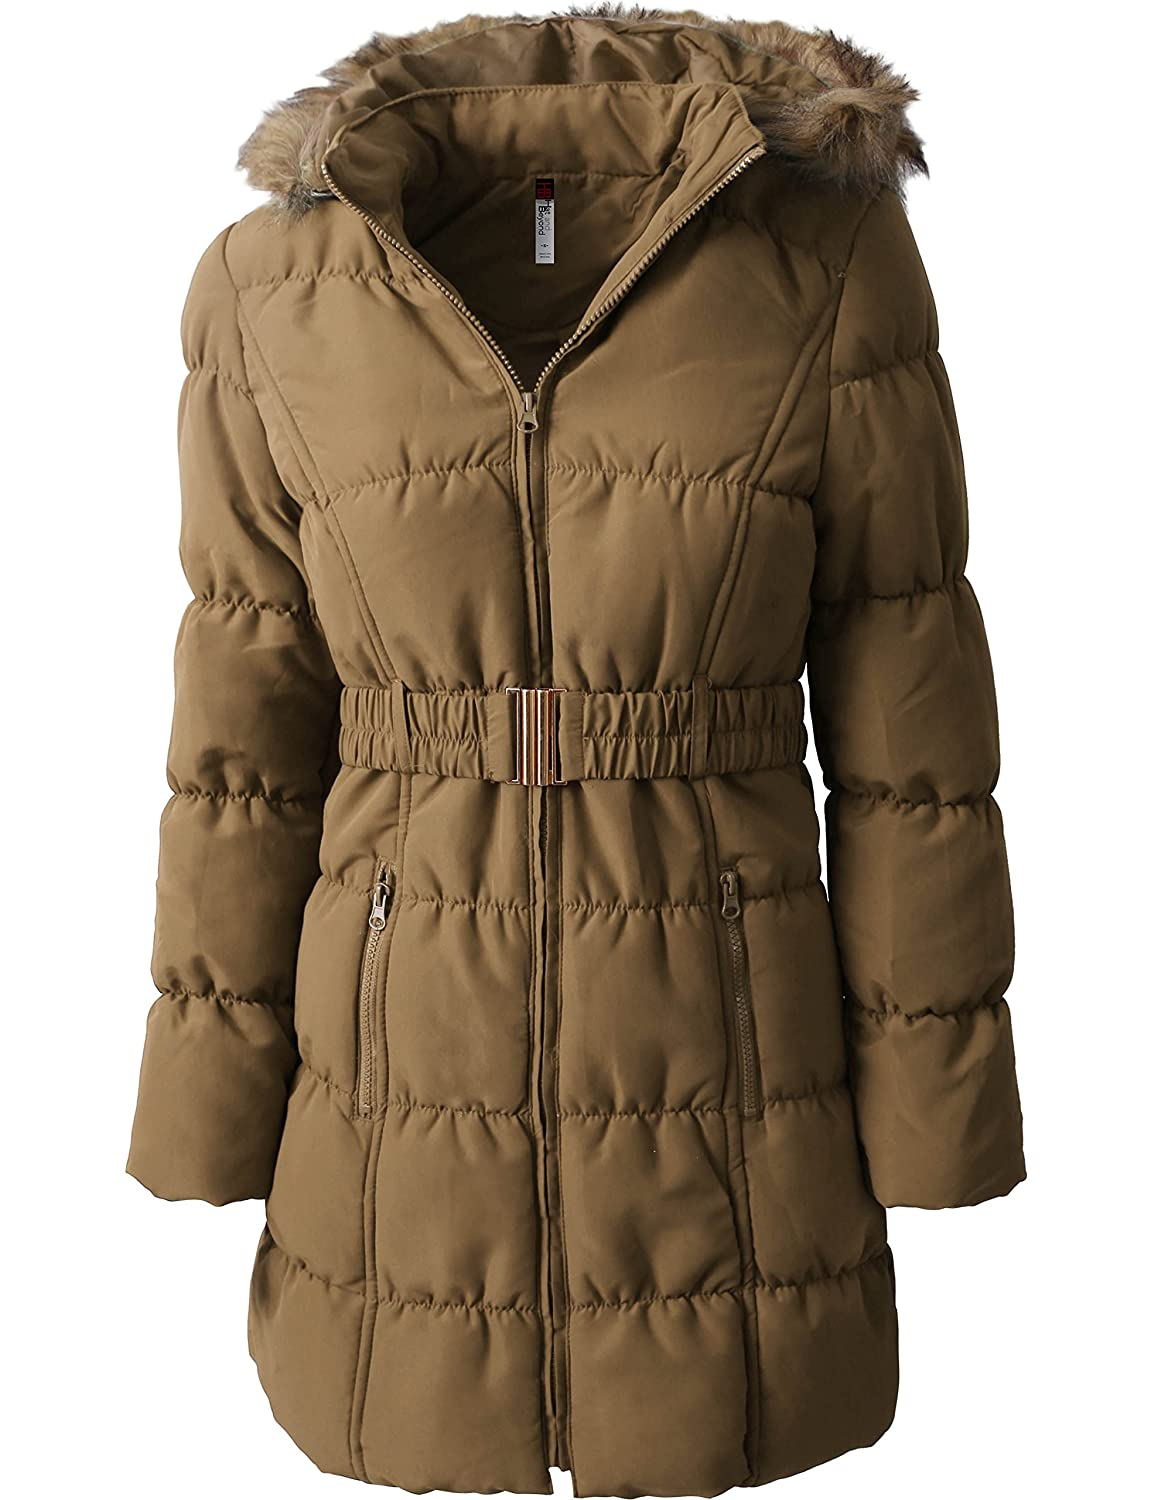 785affe24394 Womens Quilted Faux Fur Jackets Warm Parka Lined Belted Insulated Puffer  Coats